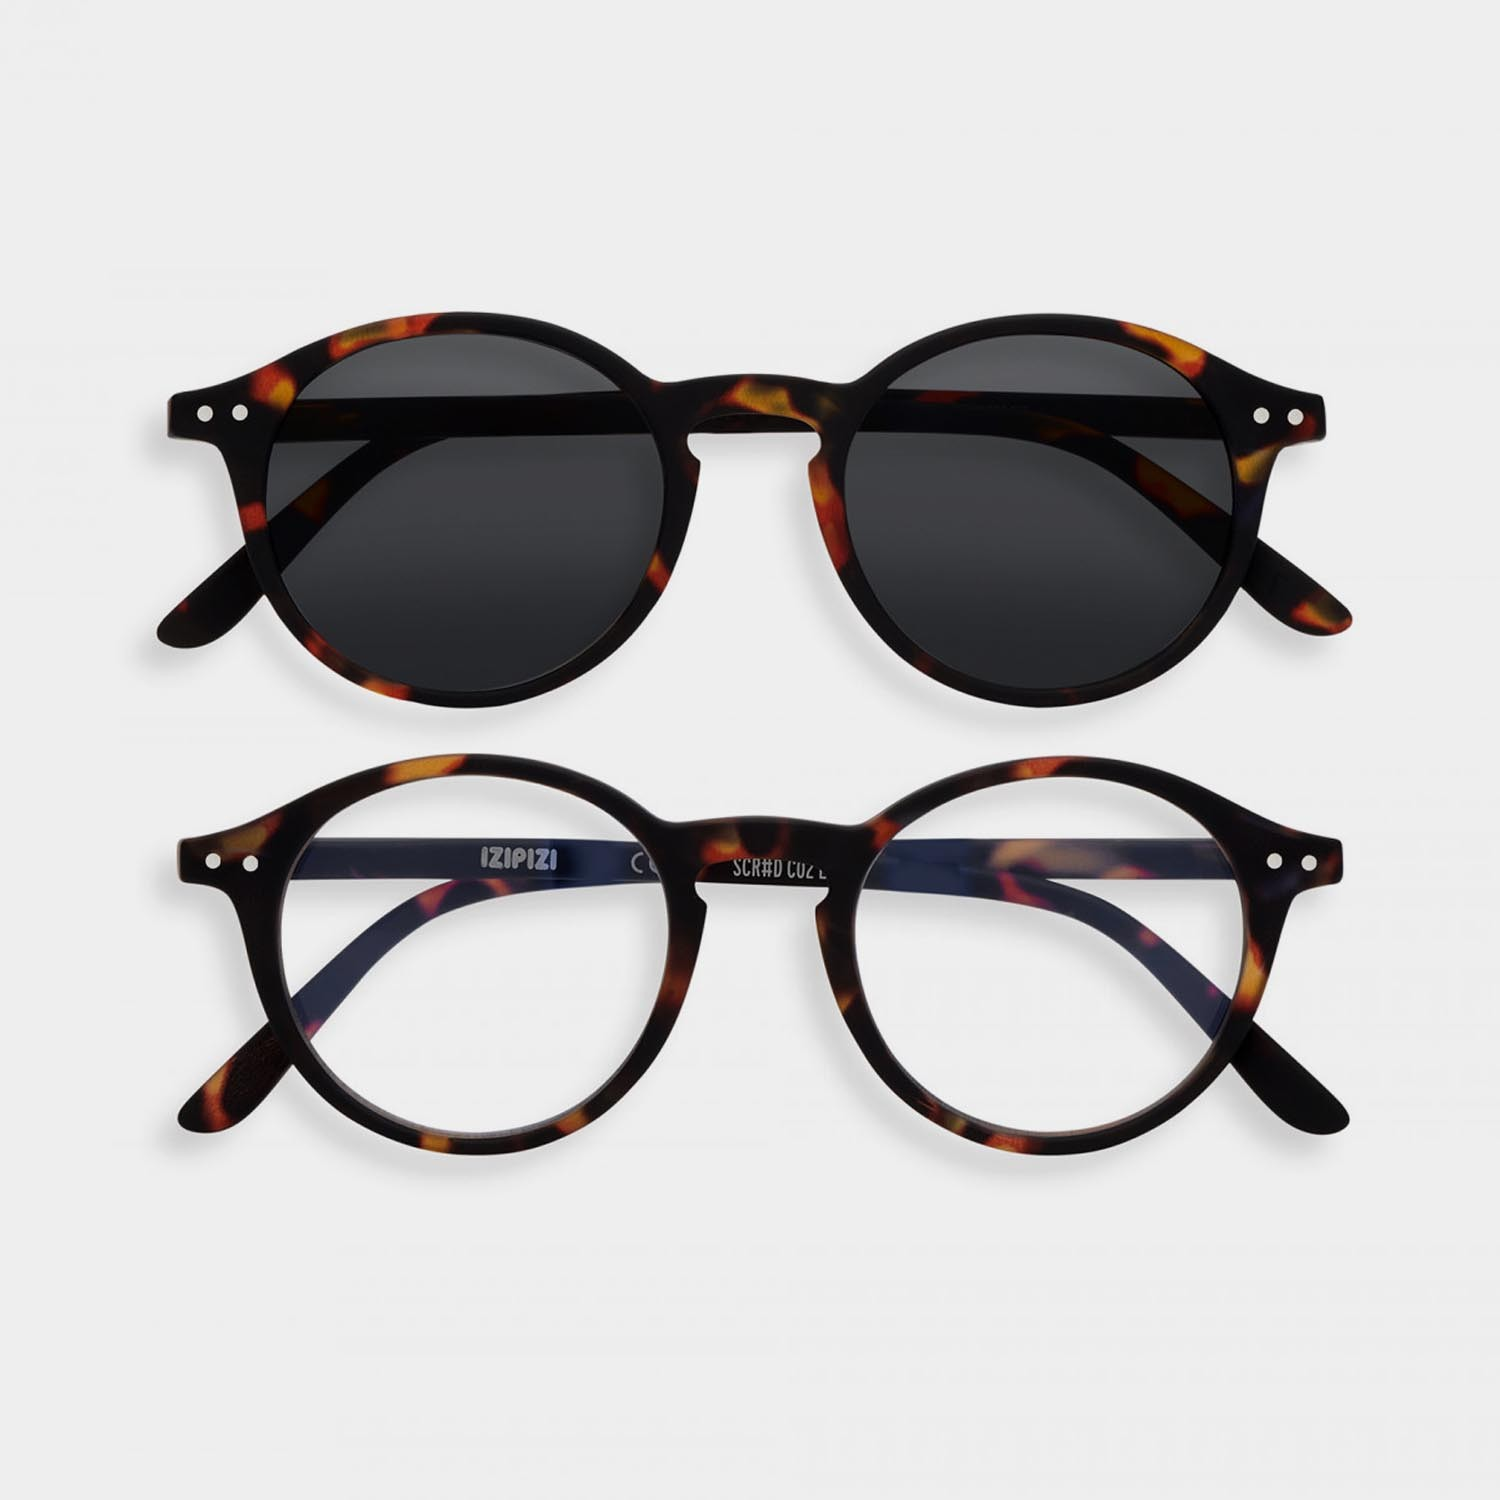 SCREEN and SUN Glasses Duo #D, Tortoise